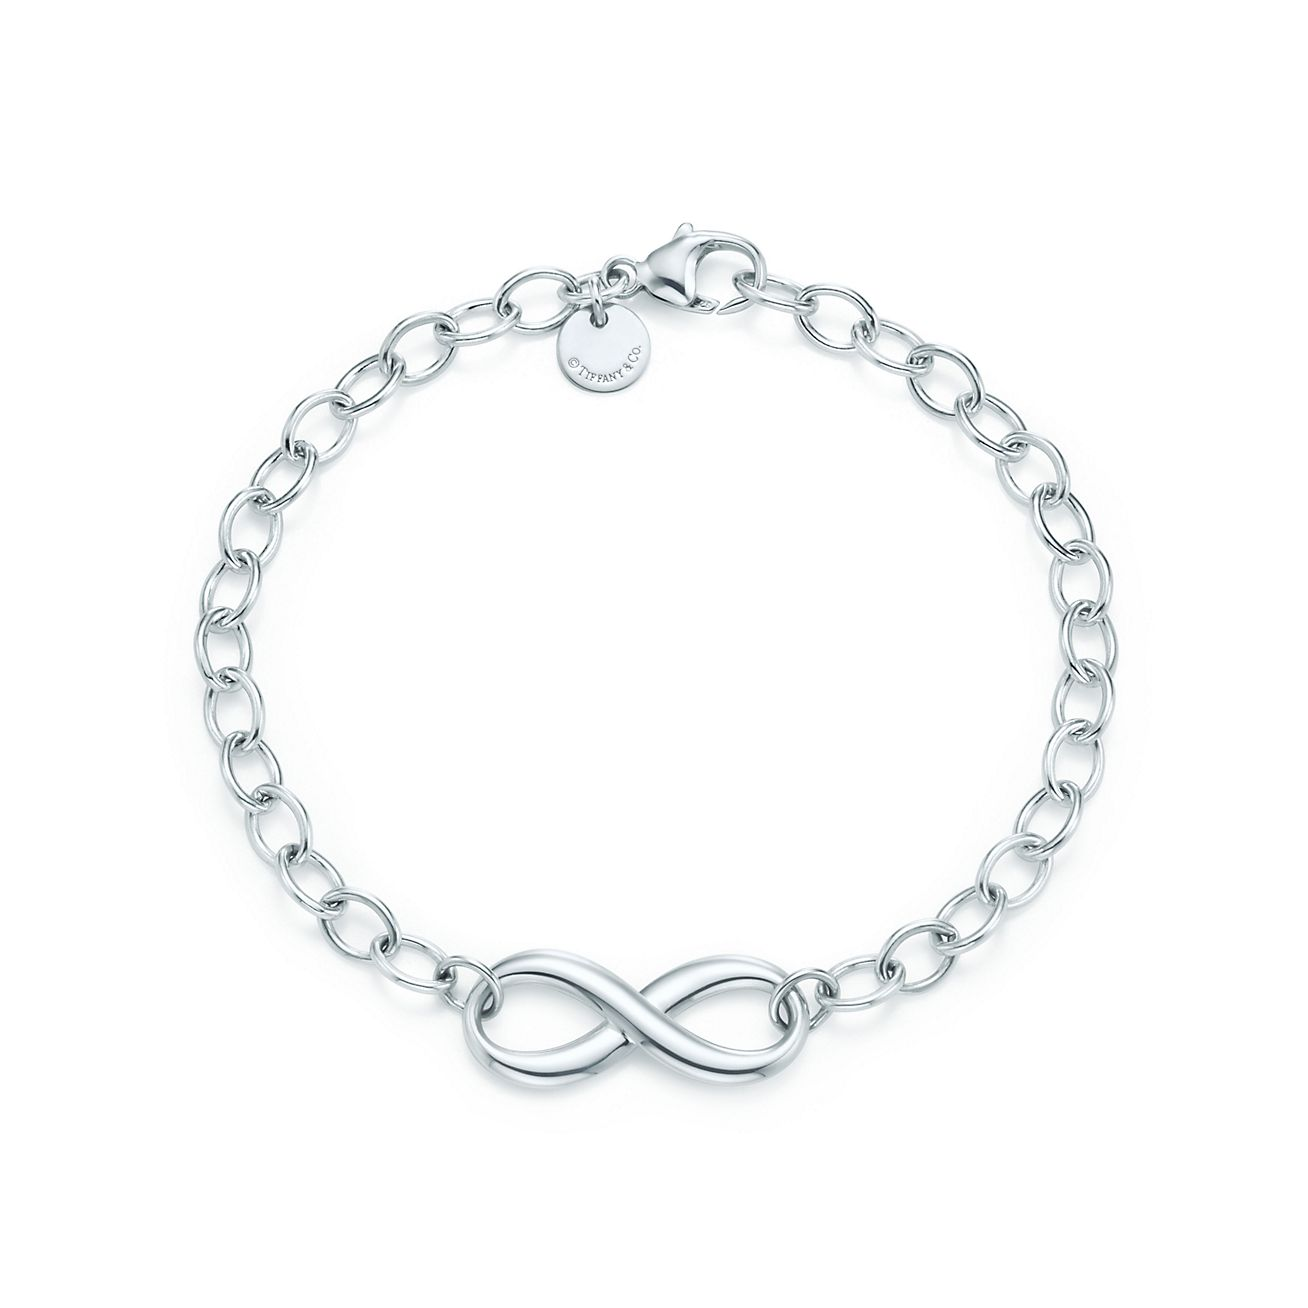 Silver sterling infinity bracelets recommend dress for on every day in 2019